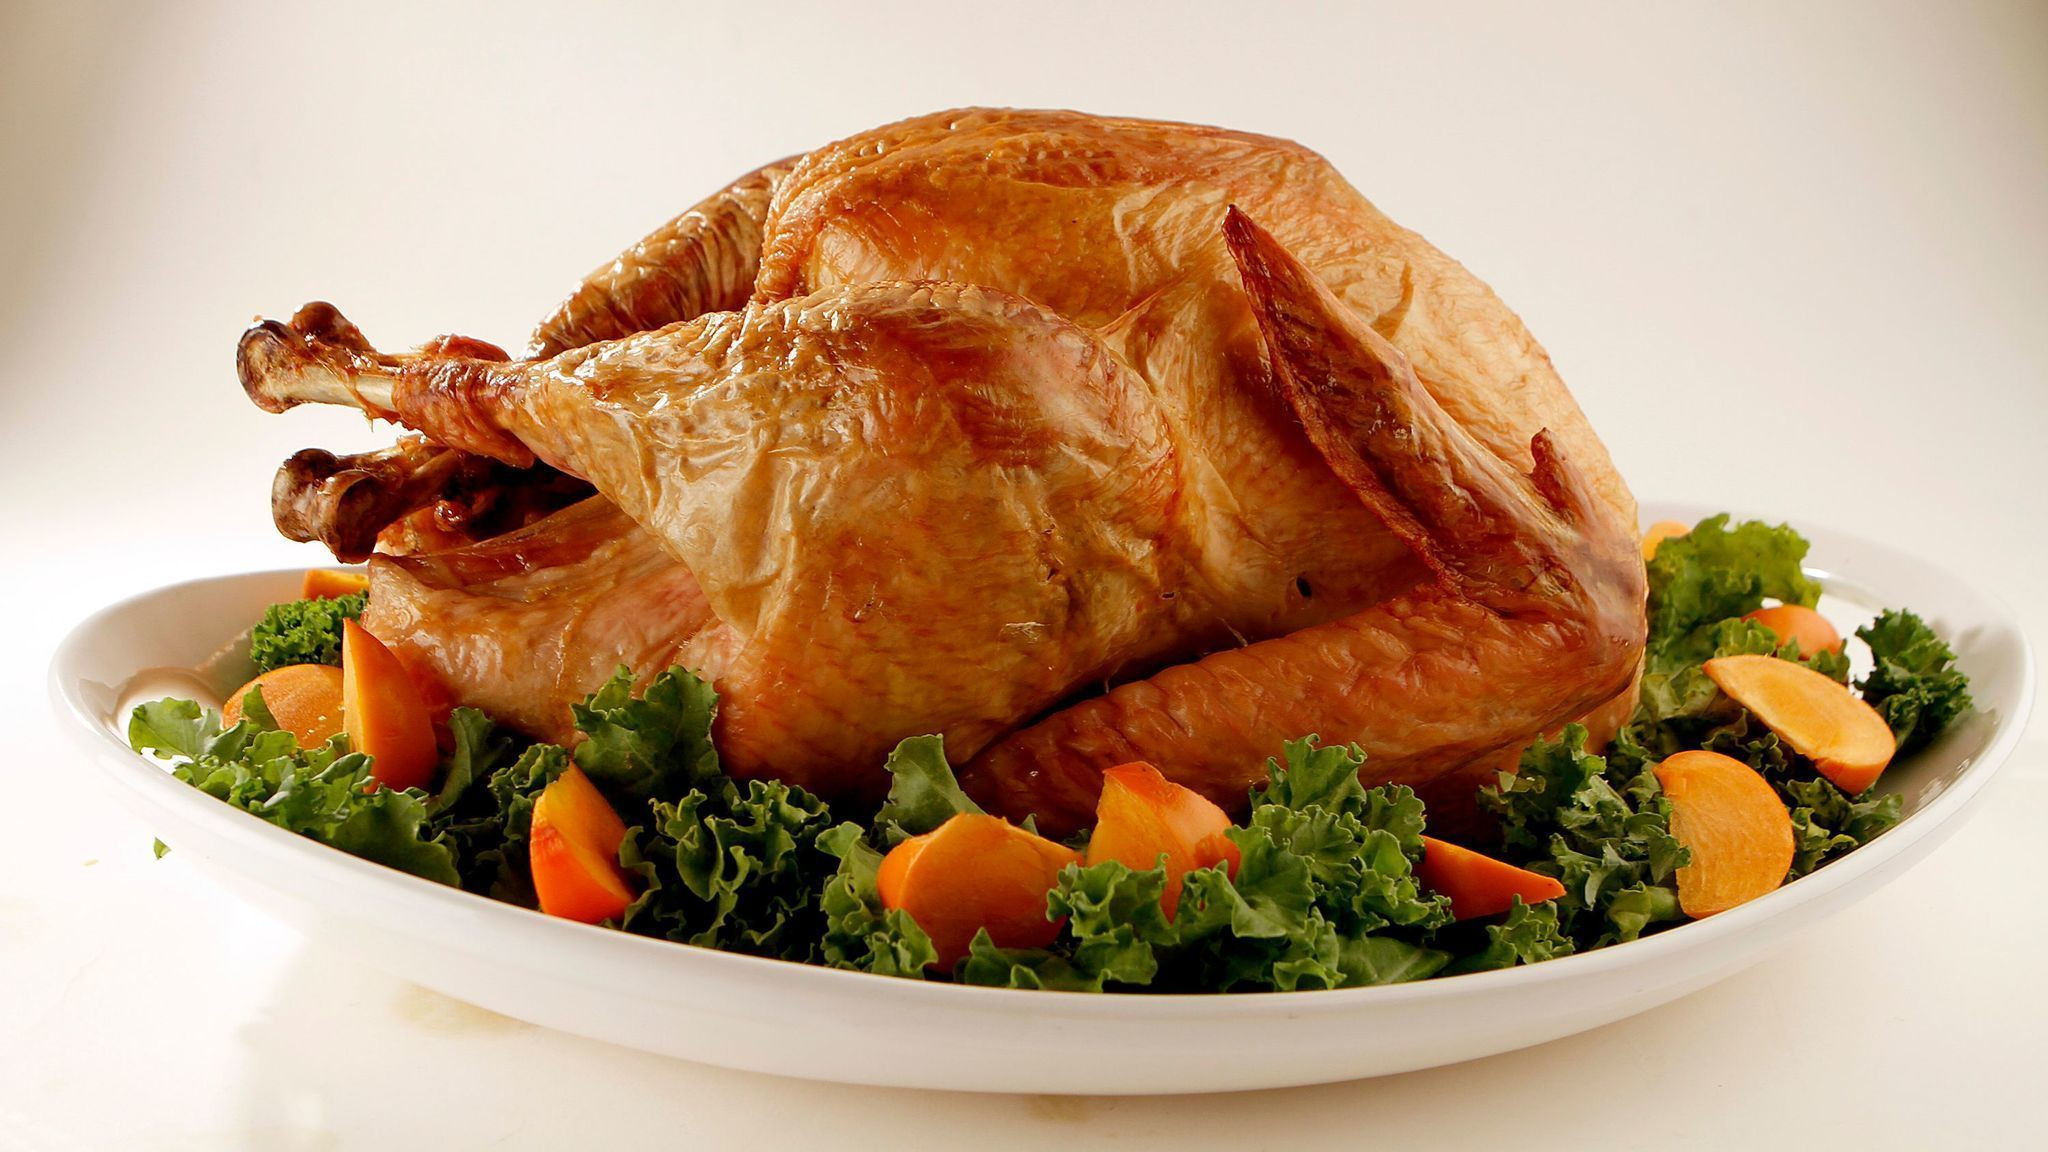 Cooking Thanksgiving Turkey  A beginner s guide to cooking a Thanksgiving turkey LA Times